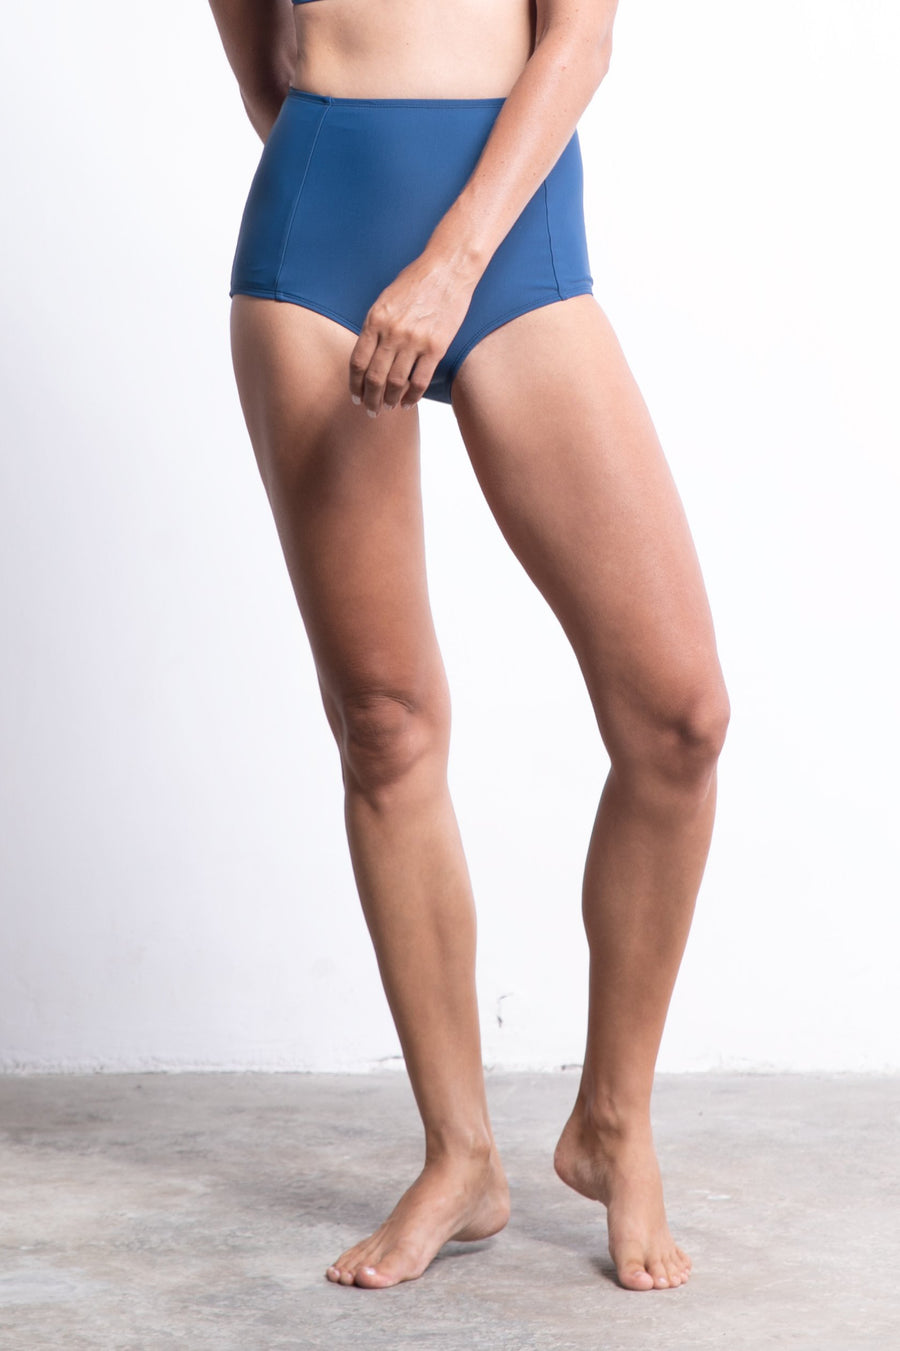 ninefoot Sanur women surf bikini bottom high waist blue